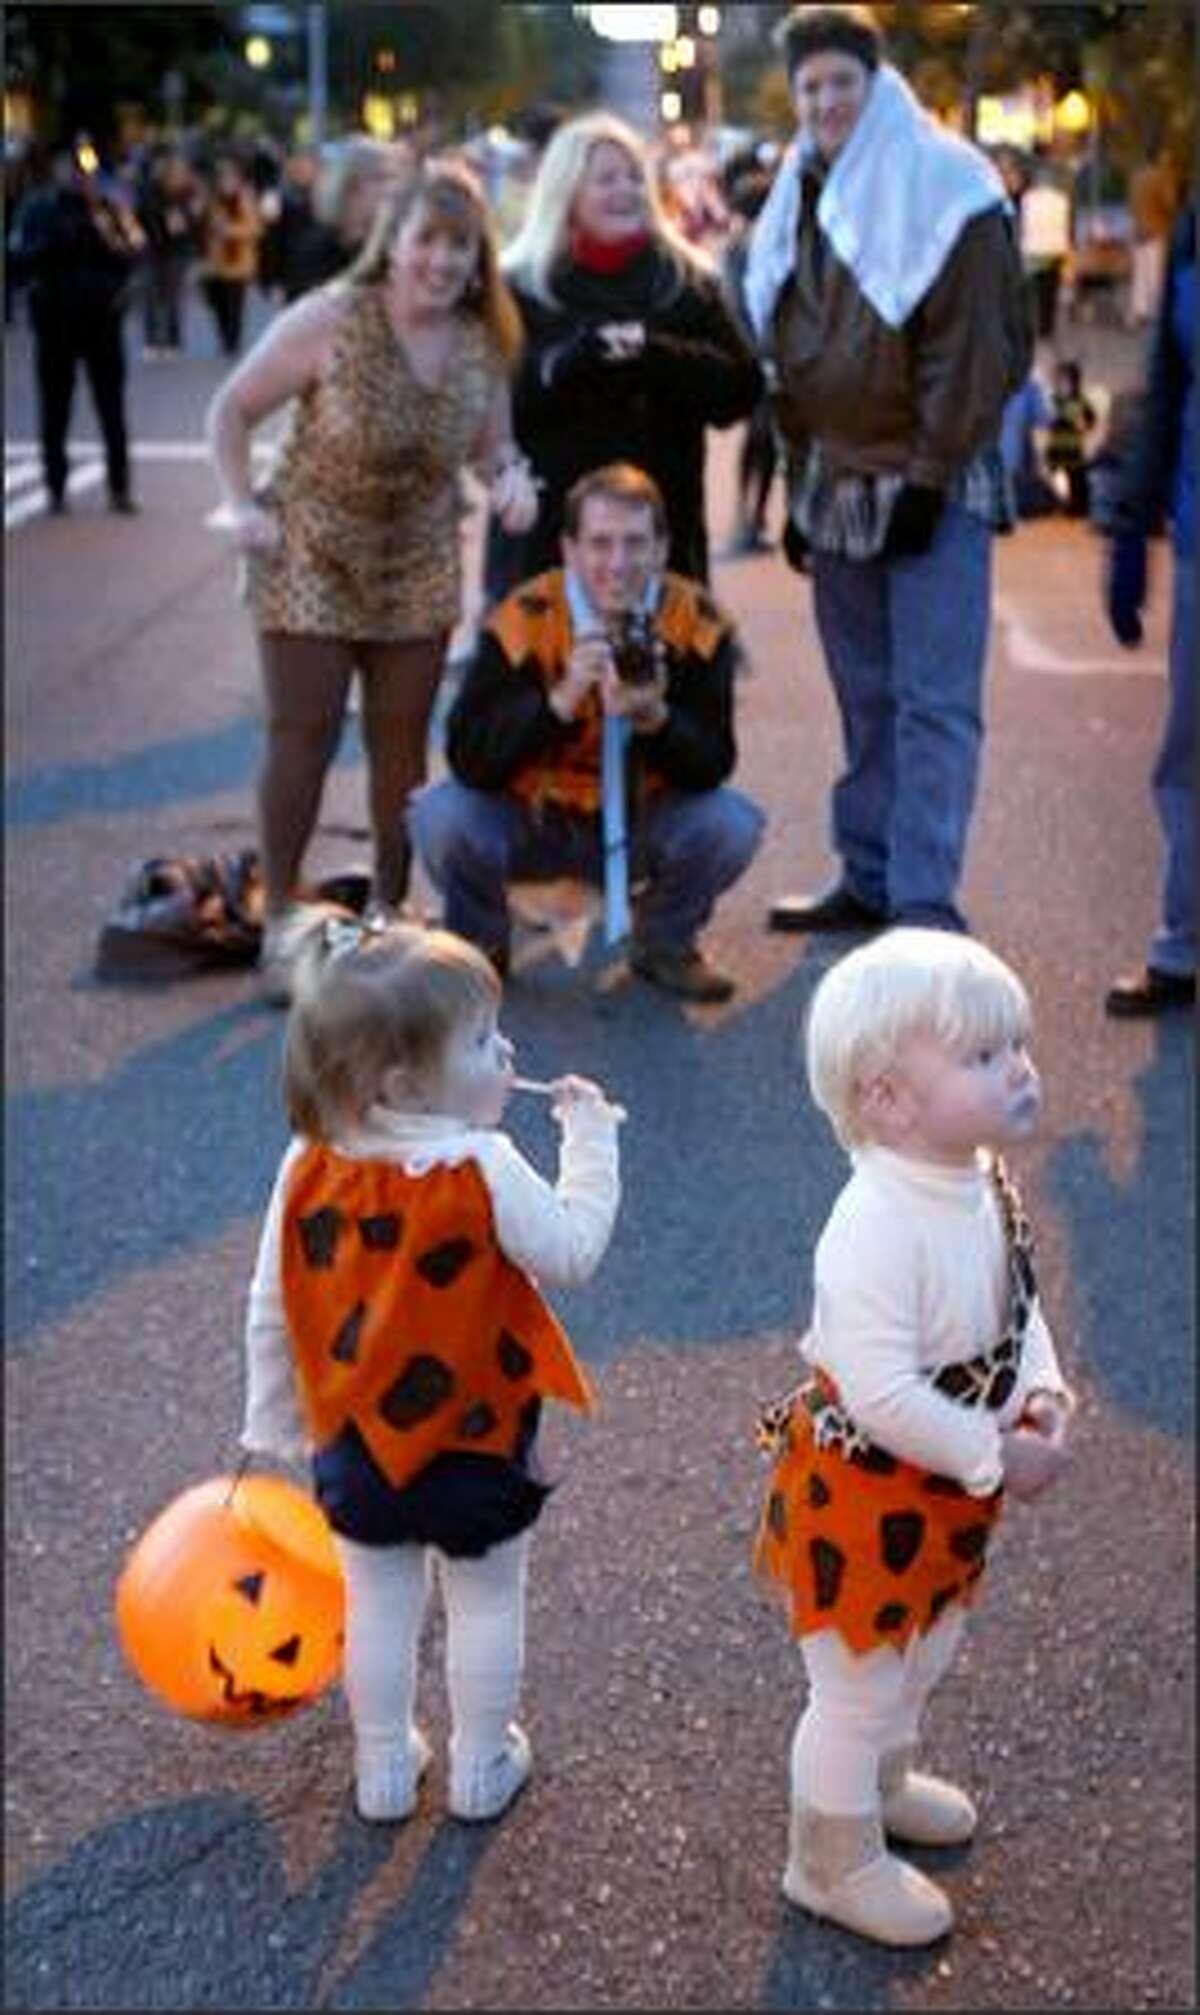 Cecilia Phillips, 1, left, and Jabe Wesson, 1, check out the scene while their family tries to take a photo of the young Flintstones in Magnolia Village during the annual neighborhood trick-or-treat event on Tuesday in Seattle. Hundreds of little ghosts, golblins, ferries, monsters and a few Darth Vaders invaded the quiet neighborhood in search of Halloween treats.